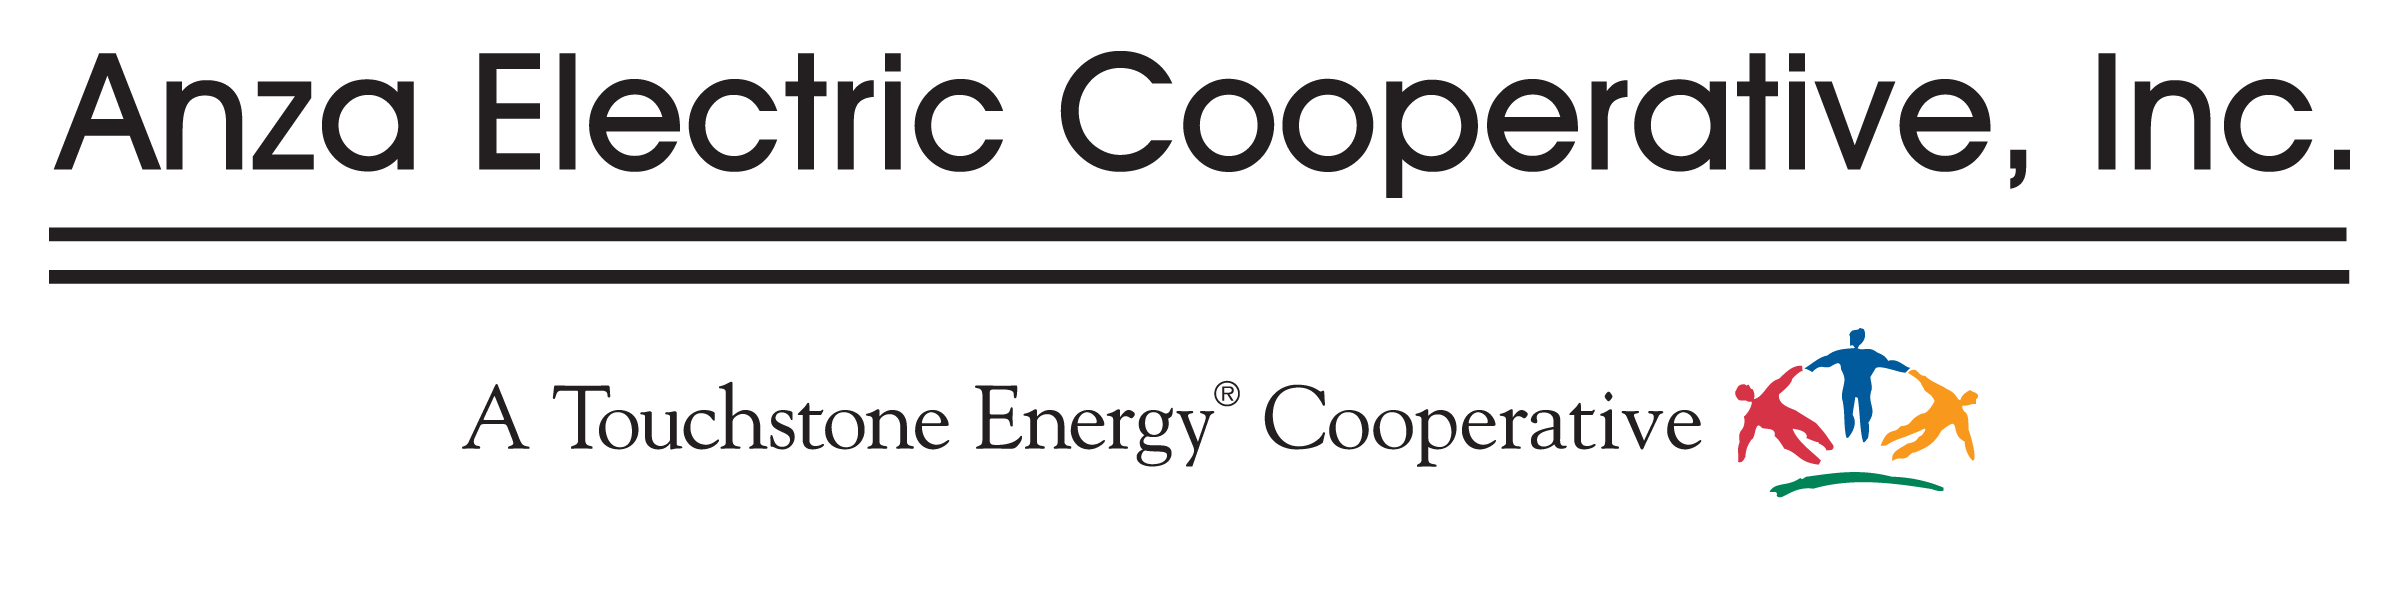 Anza Electric Cooperative, Inc. Logo